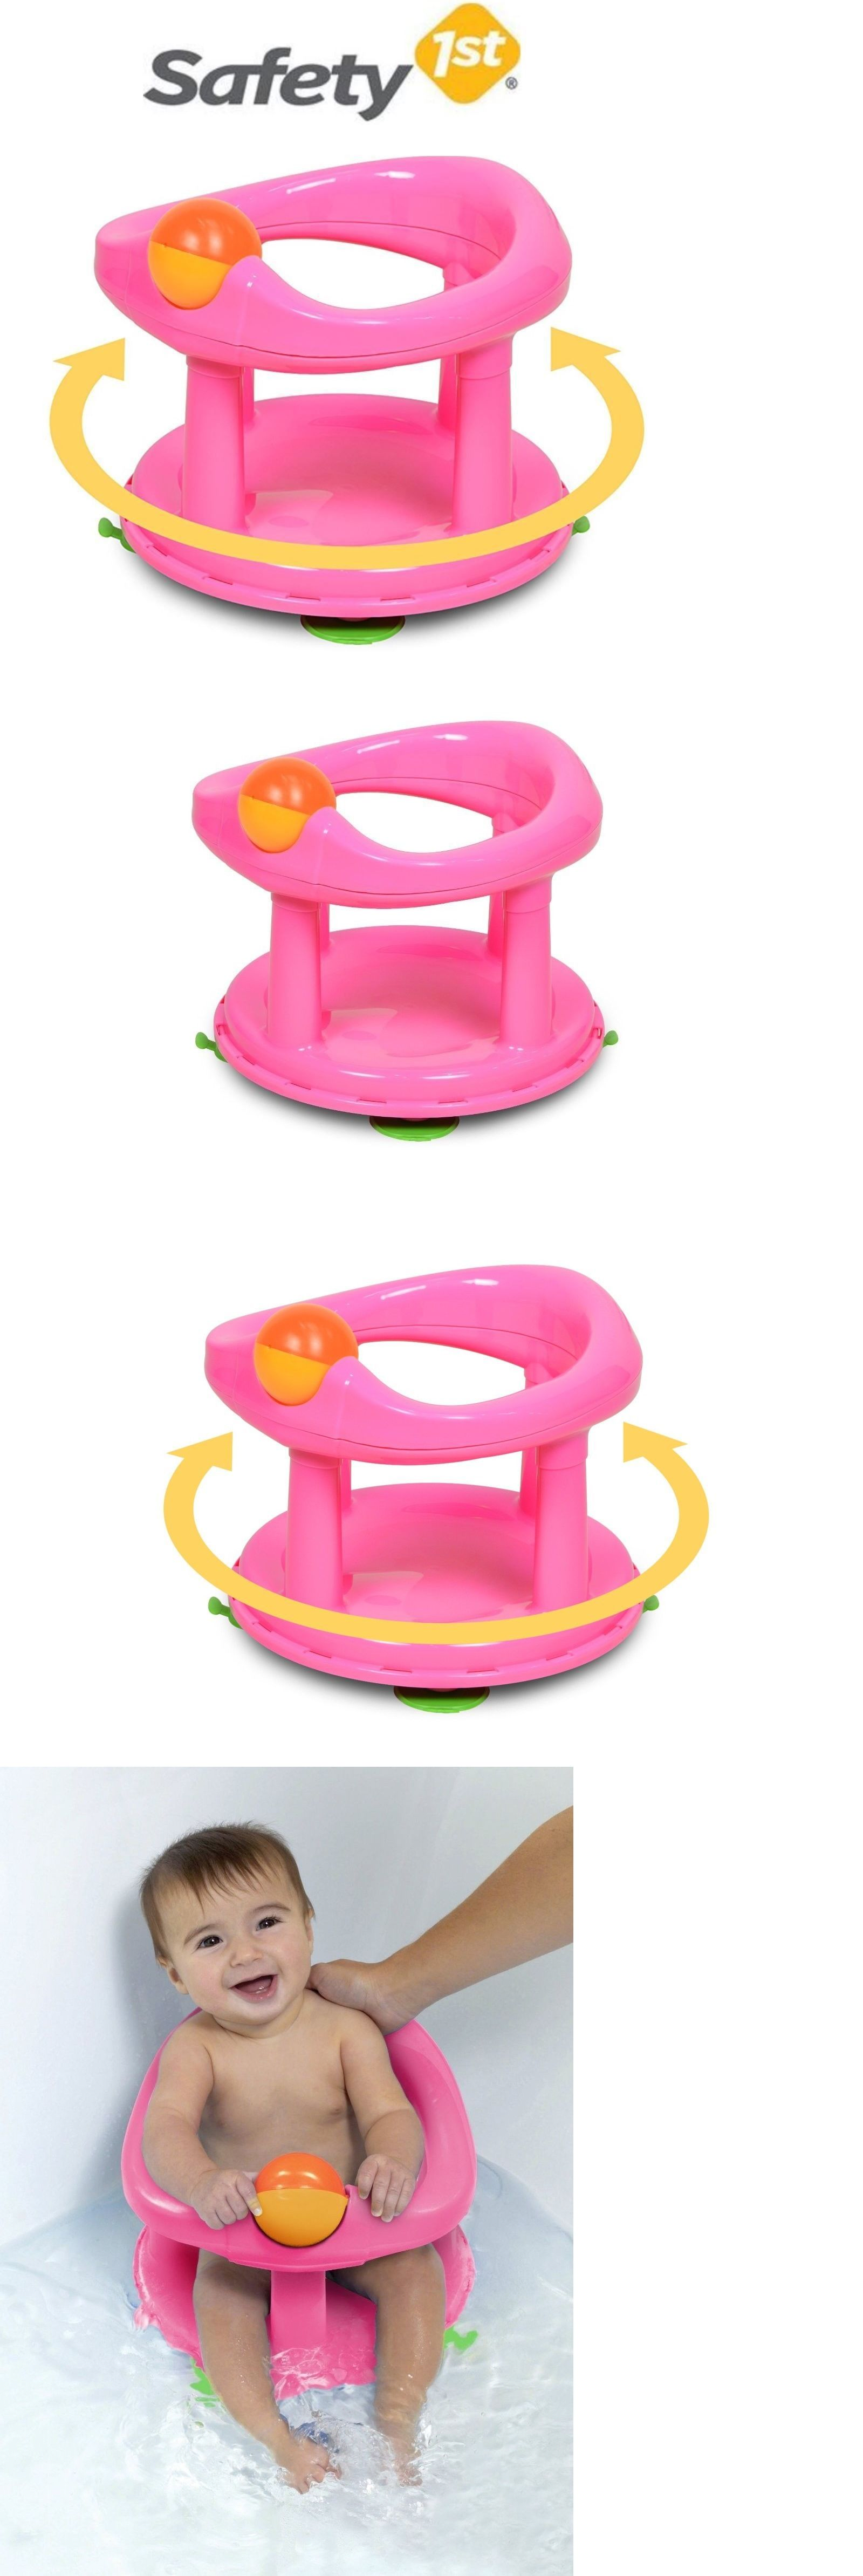 Baby Bath Tub Ring Safety First 1st Anti Slip Seat Toddler infant ...